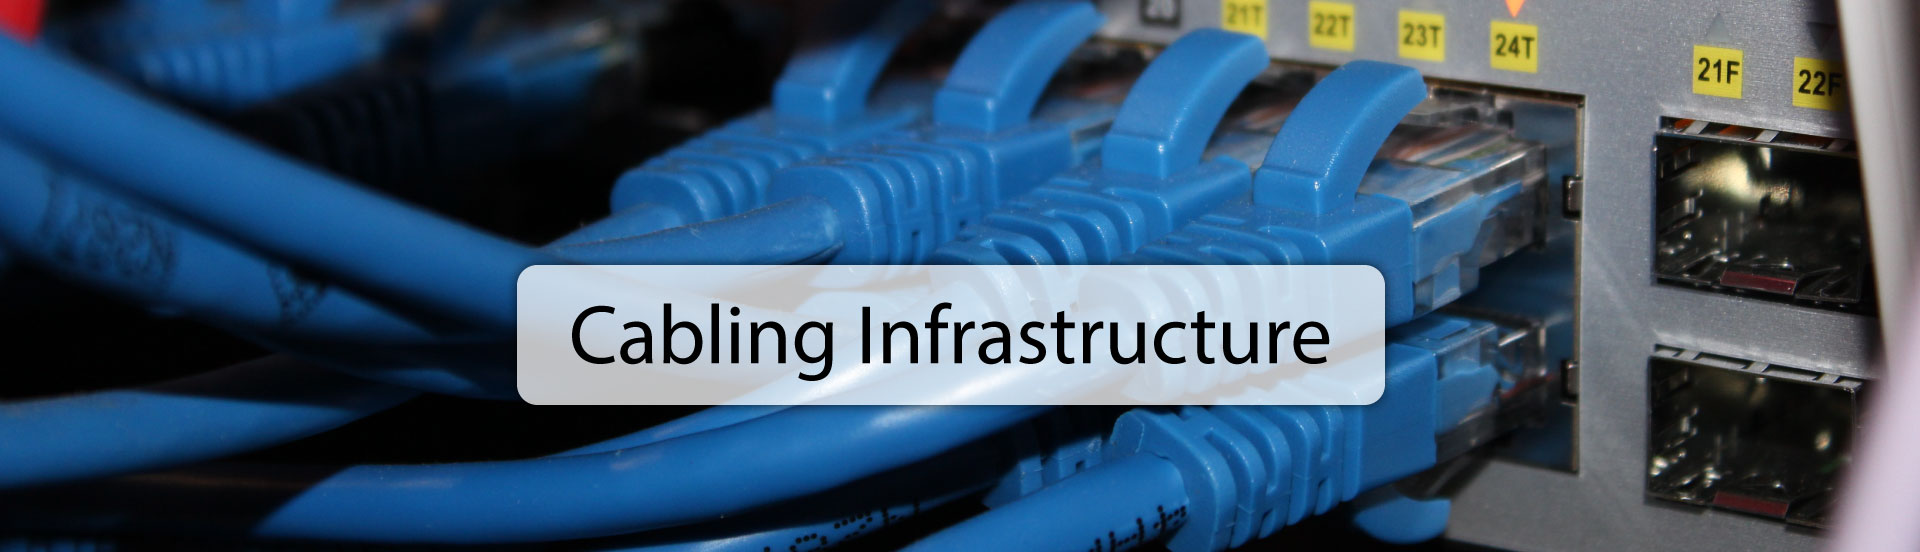 TechPoint structured cabling solutions